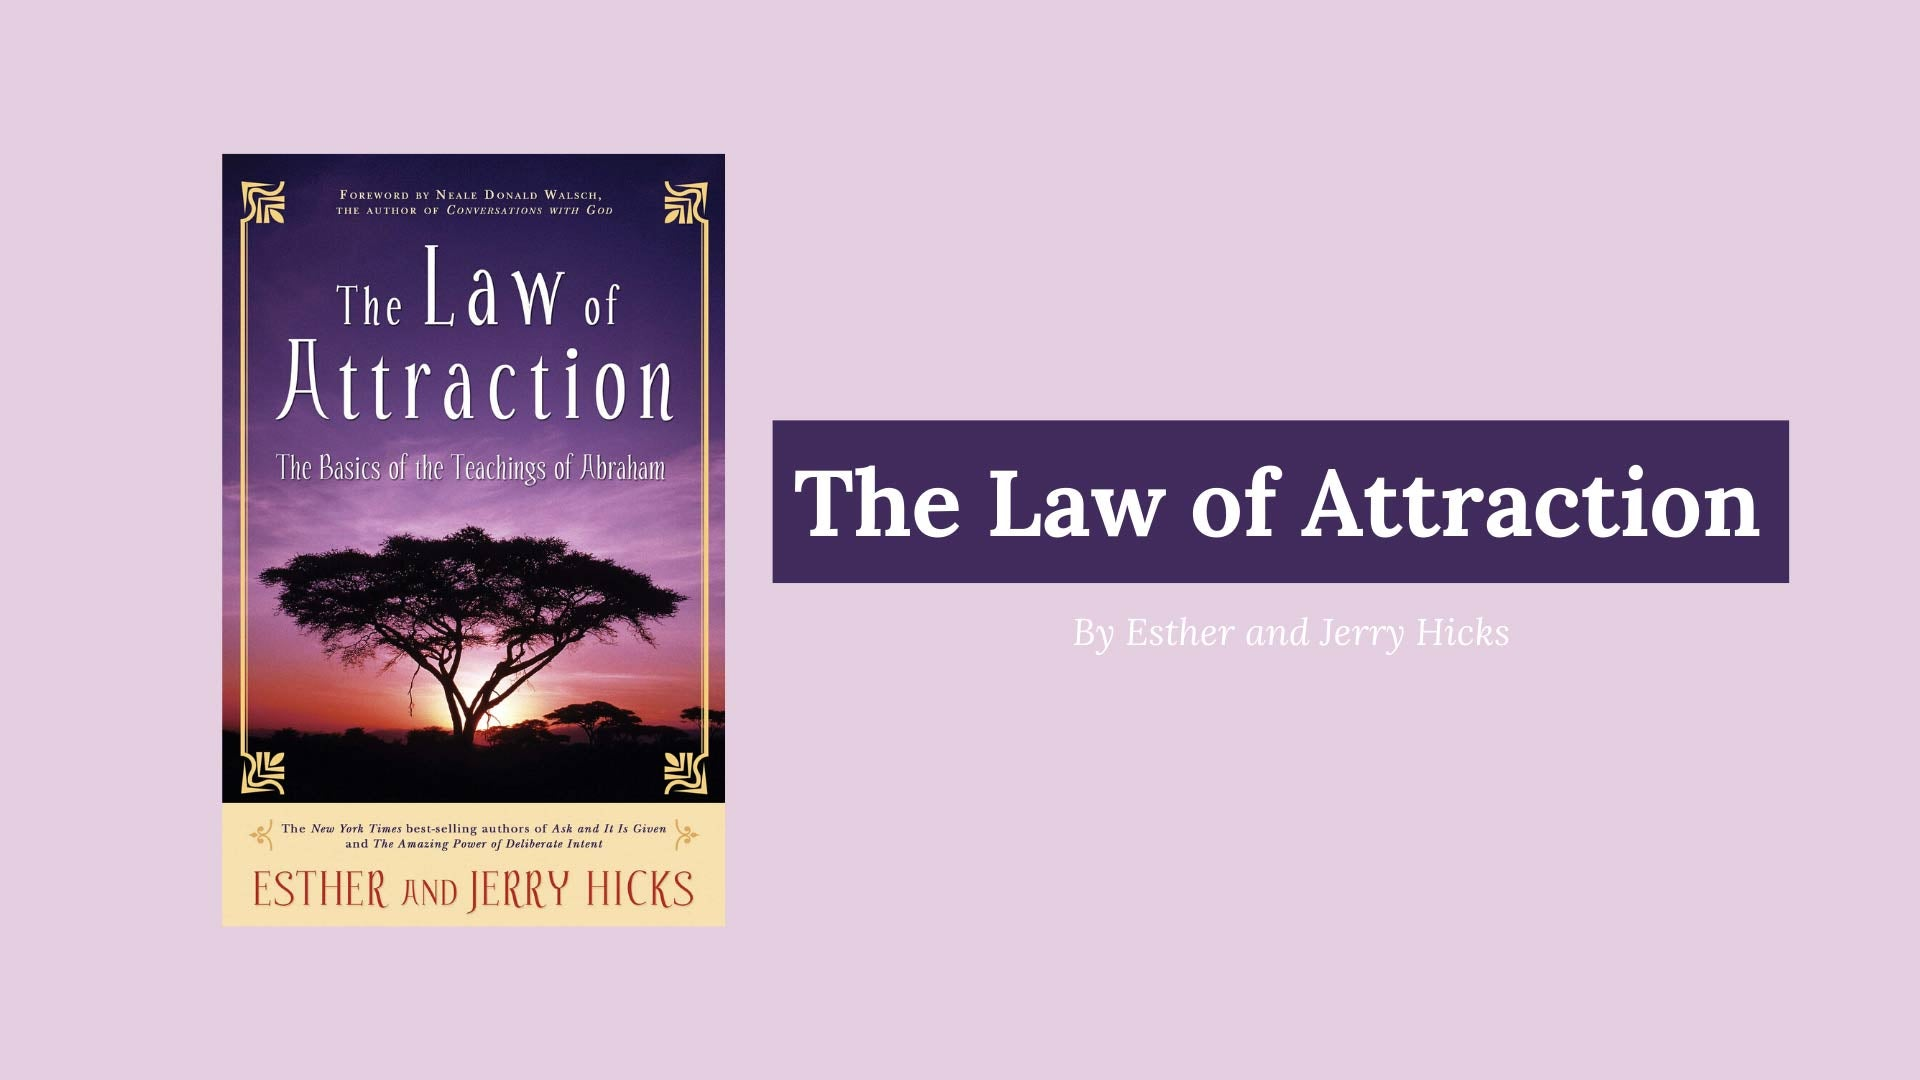 picture of the law of attraction book